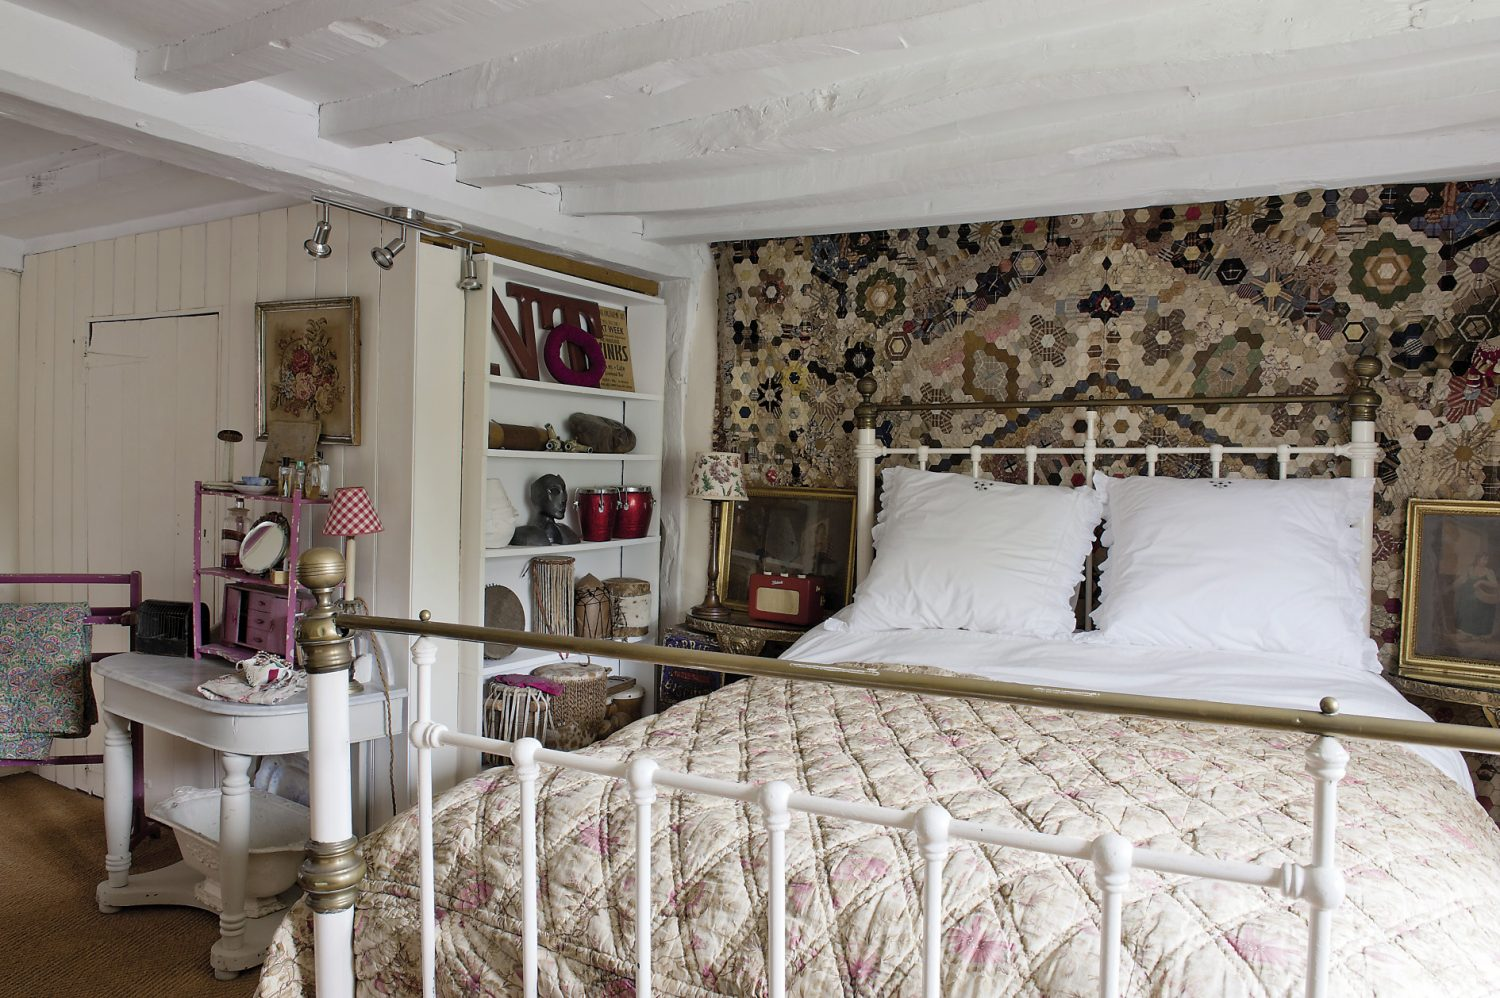 In the spare room, an intricate quilt has been used to create a wonderful wall hanging behind the head of the bed. Collections of neatly arranged objects line the shelves and the pale beams give the optical illusion of raising the ceiling height